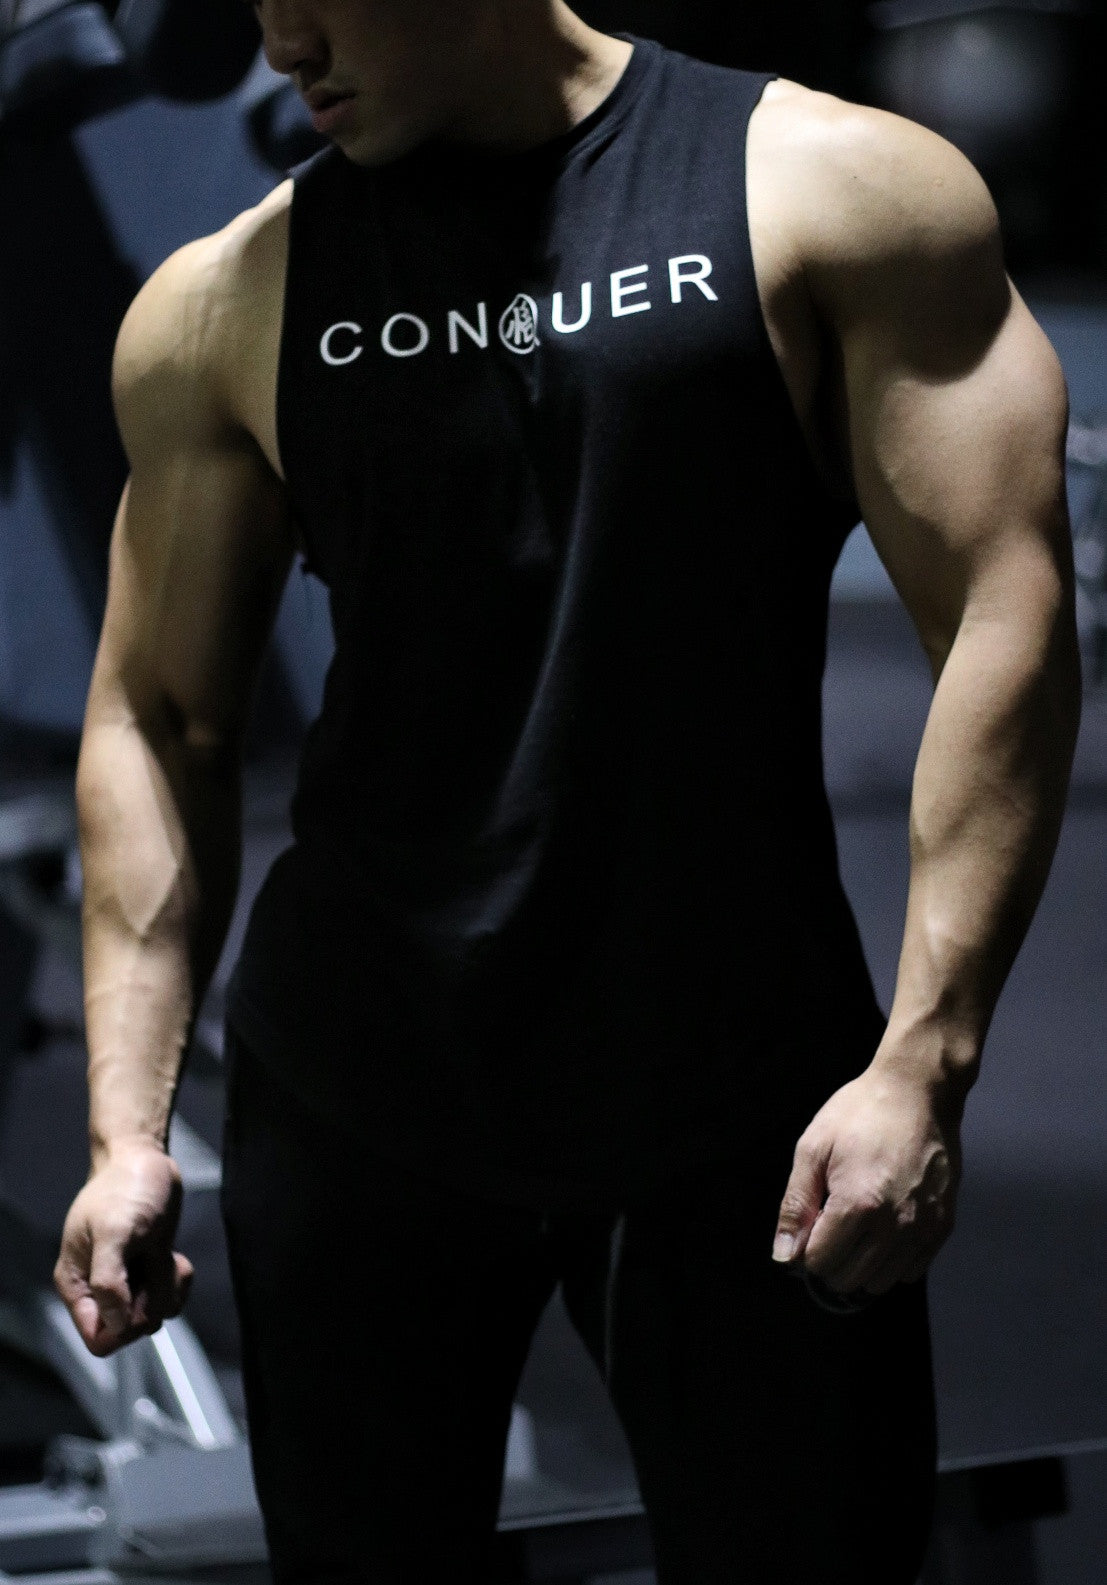 [NEW ARRIVAL] 'CONQUER' Muscle Shirt - Rough Cut - Elite Black